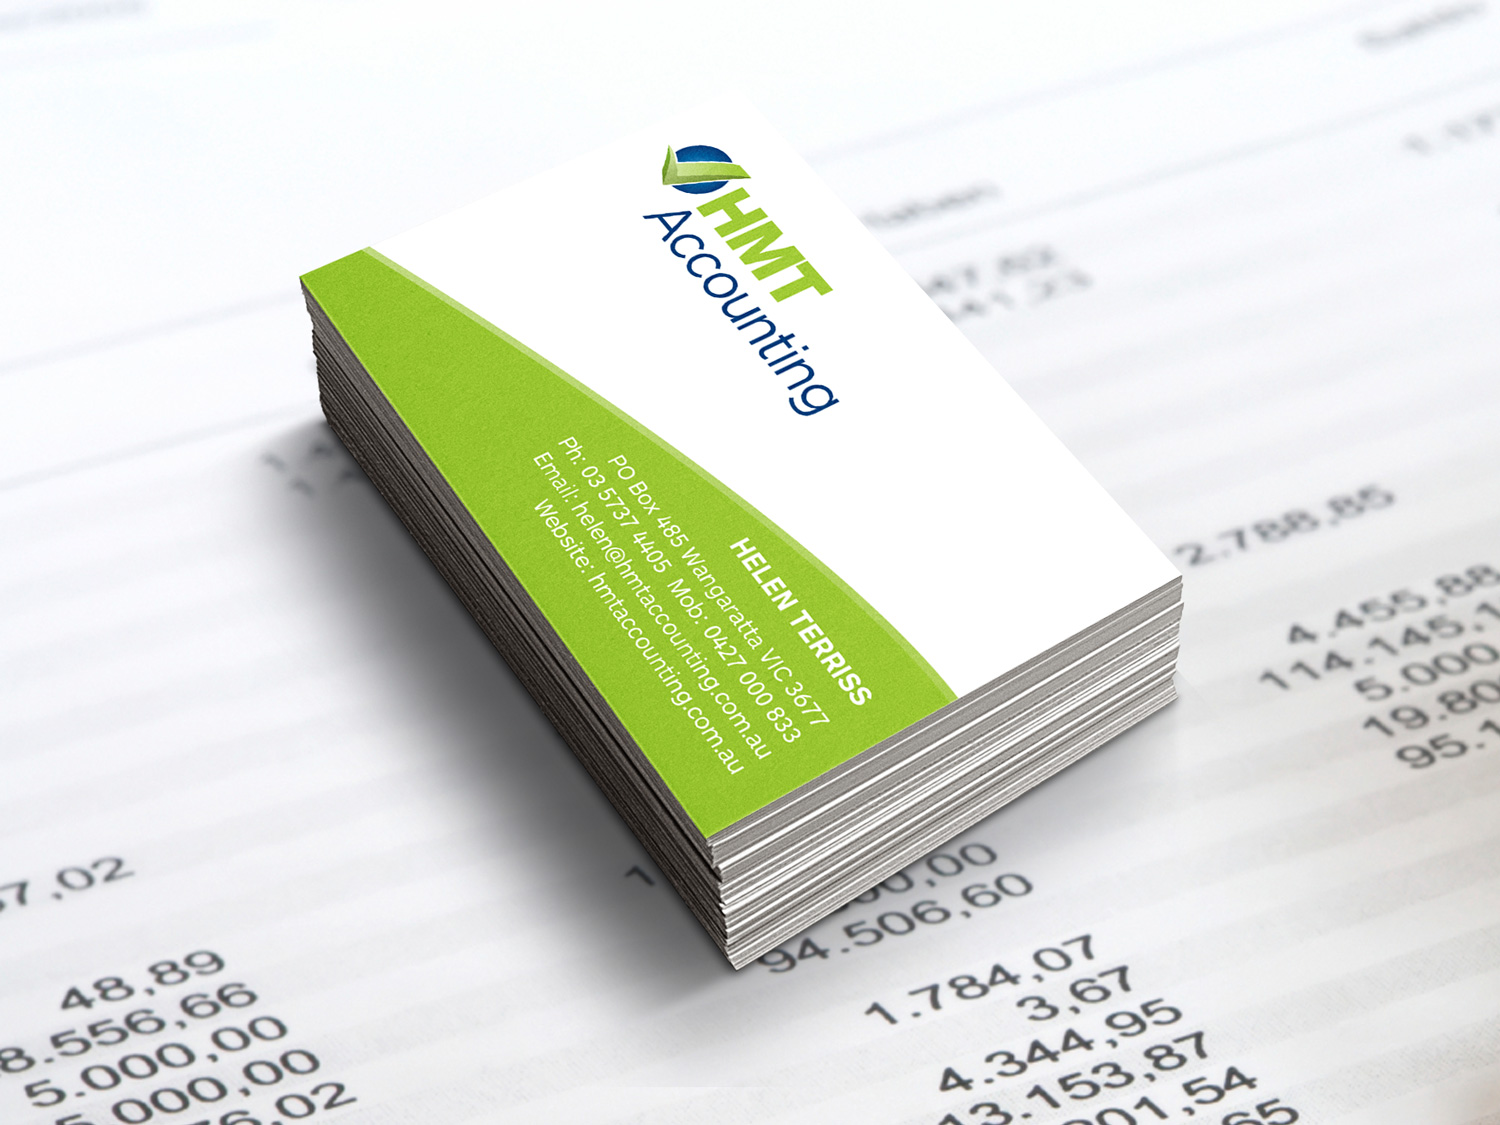 HMT Accounting Business Cards